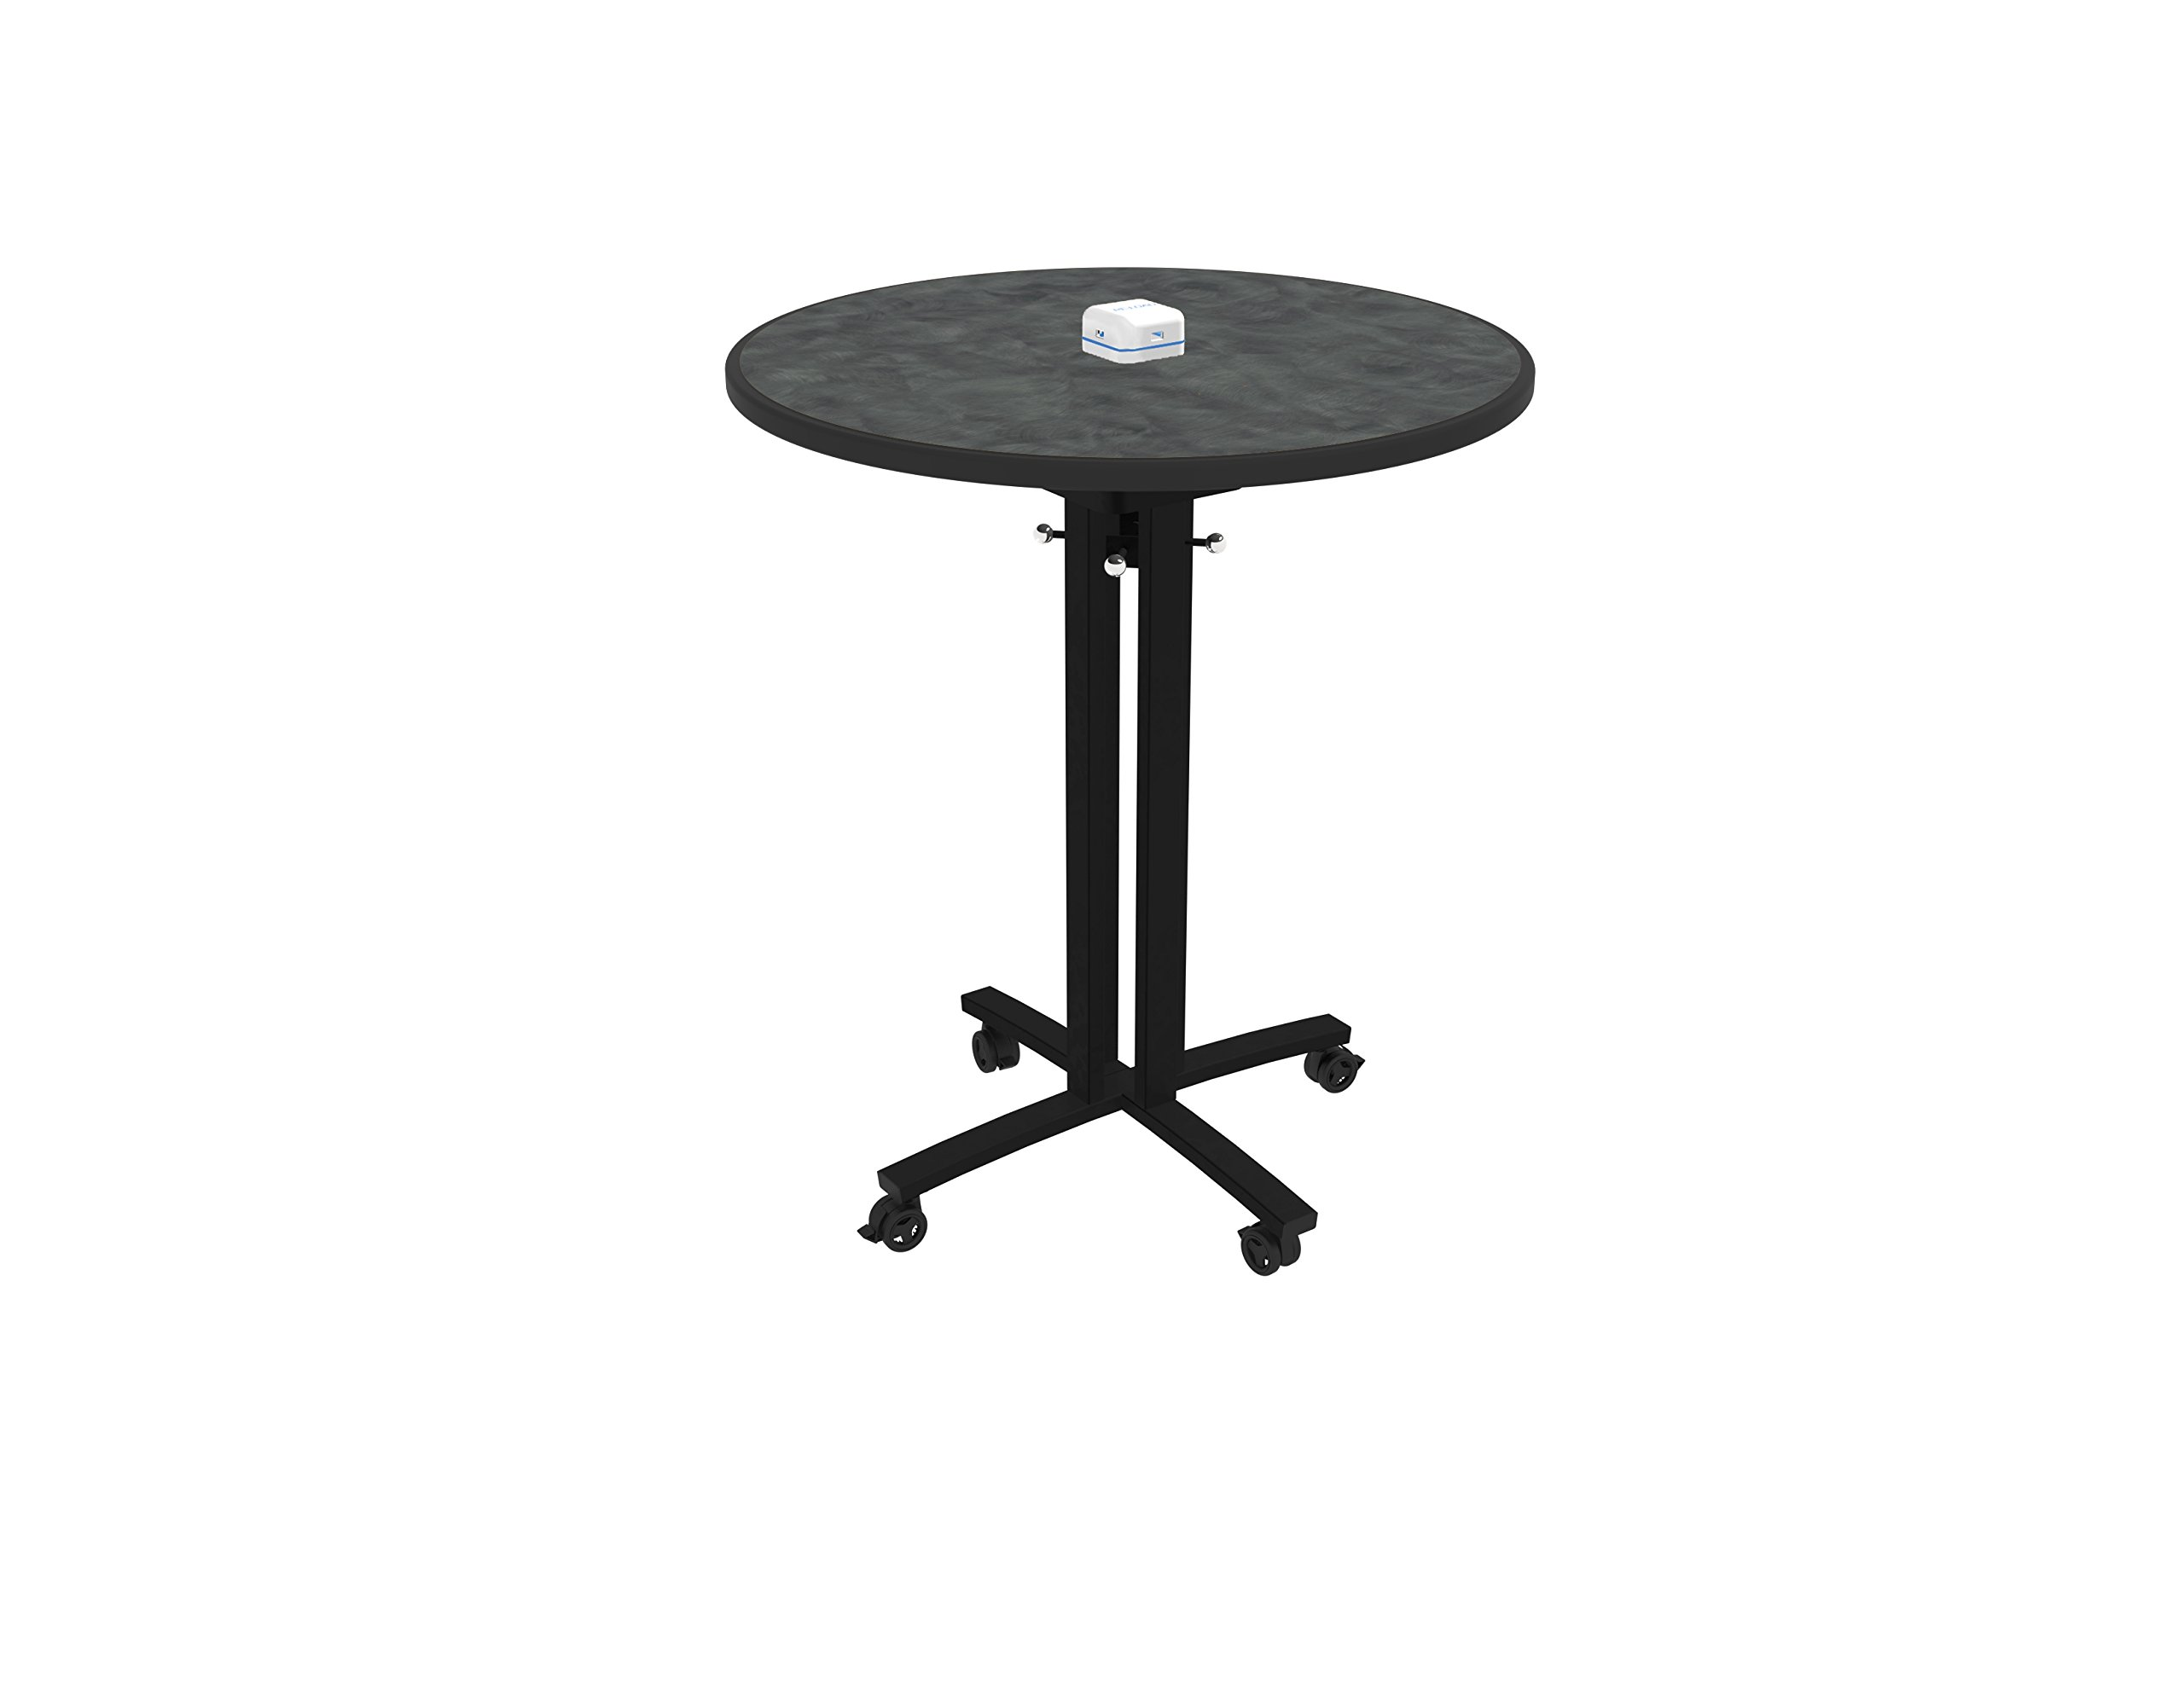 Nomad by Palmer Hamilton RELOAD Mobile Table with Usb Hub for Charging Mobile Devices, Pewter Round Top W/ Black Leg, 36'' Dia. 42'' High, Pub Height, Café, Cafateria, Library, Breakroom, School by Nomad (Image #1)